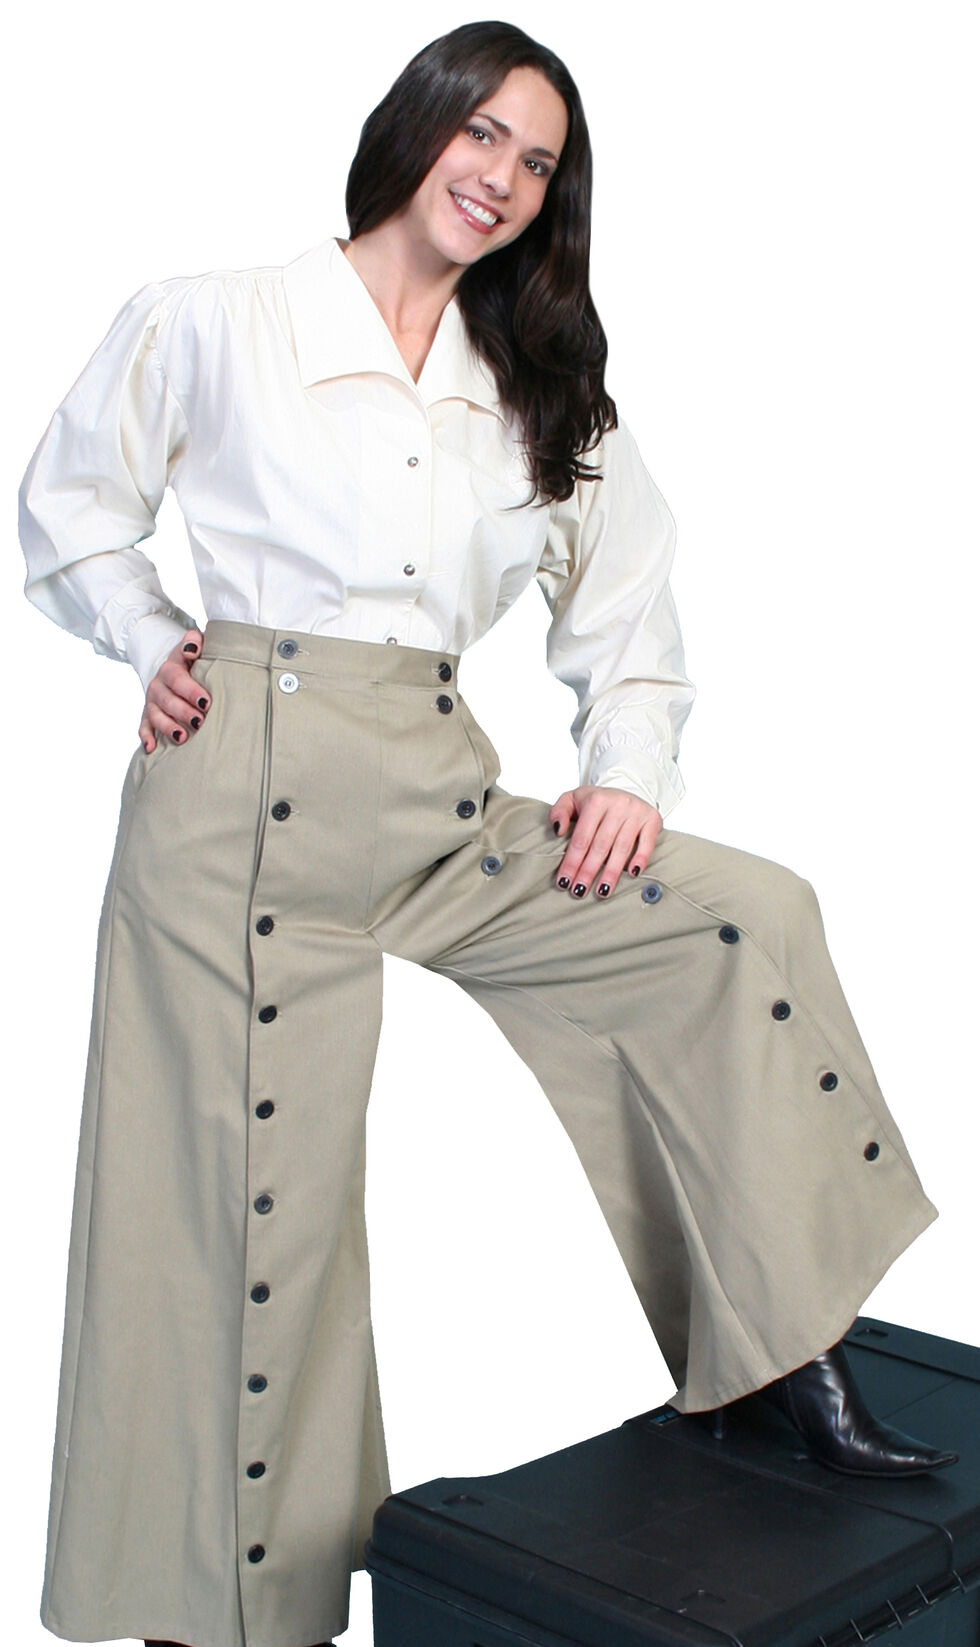 Rangewear by Scully Brushed Twill Riding Skirt, Tan, hi-res